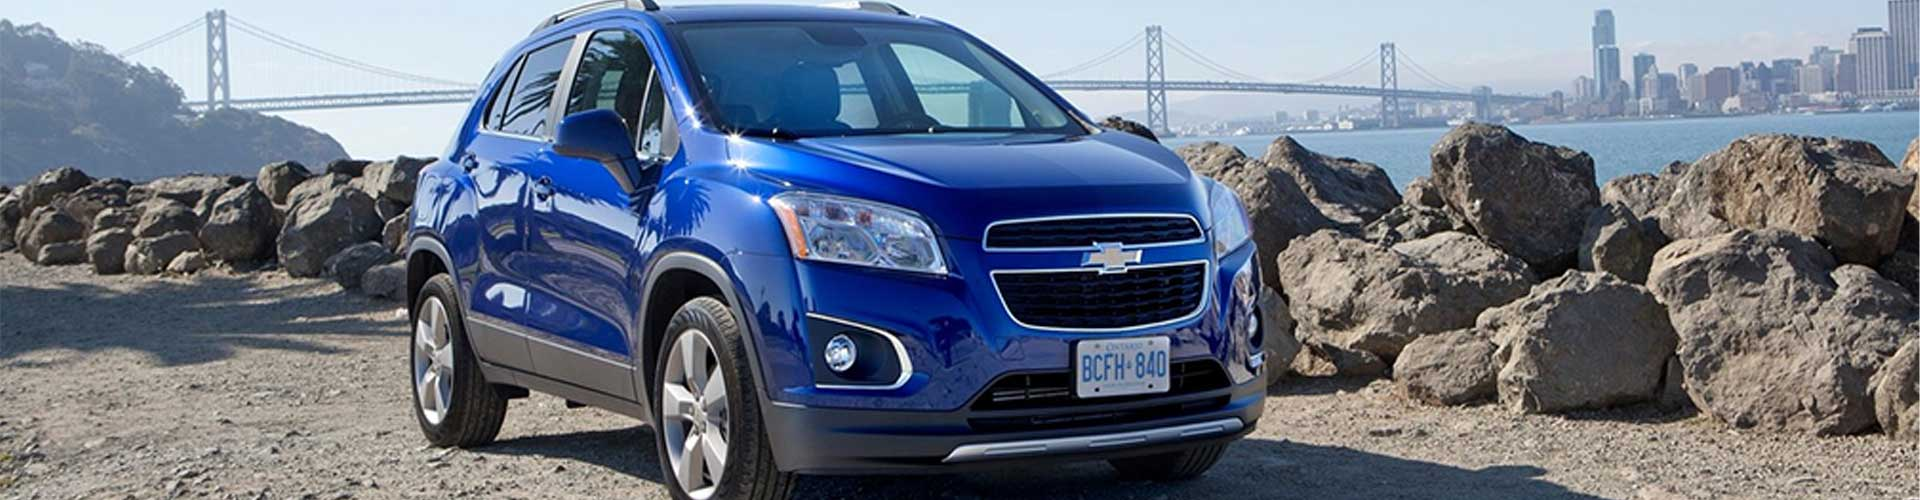 Champion Chevrolet Athens Al >> Champion Chevrolet Car Dealer In Athens Al